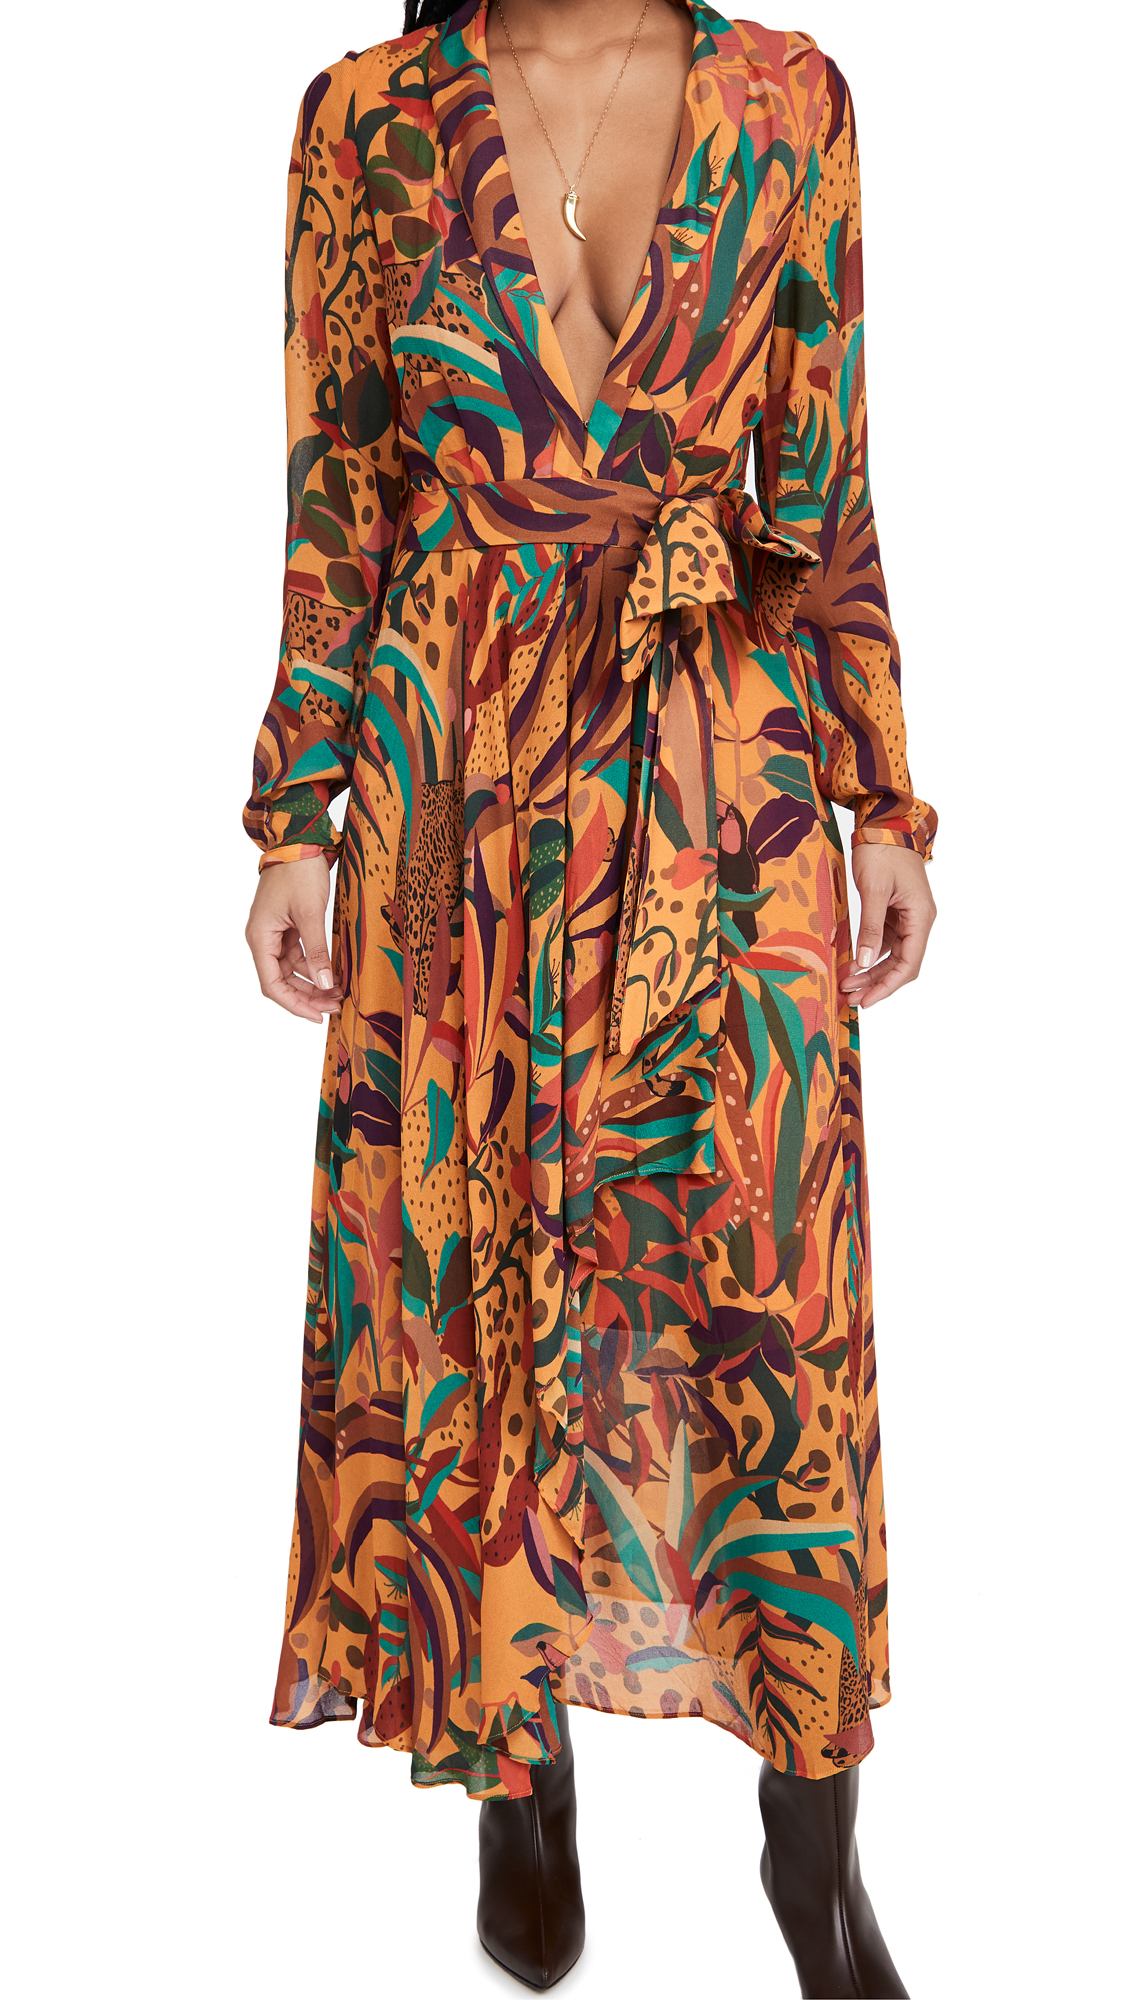 FARM Rio Golden Jungle Maxi Dress